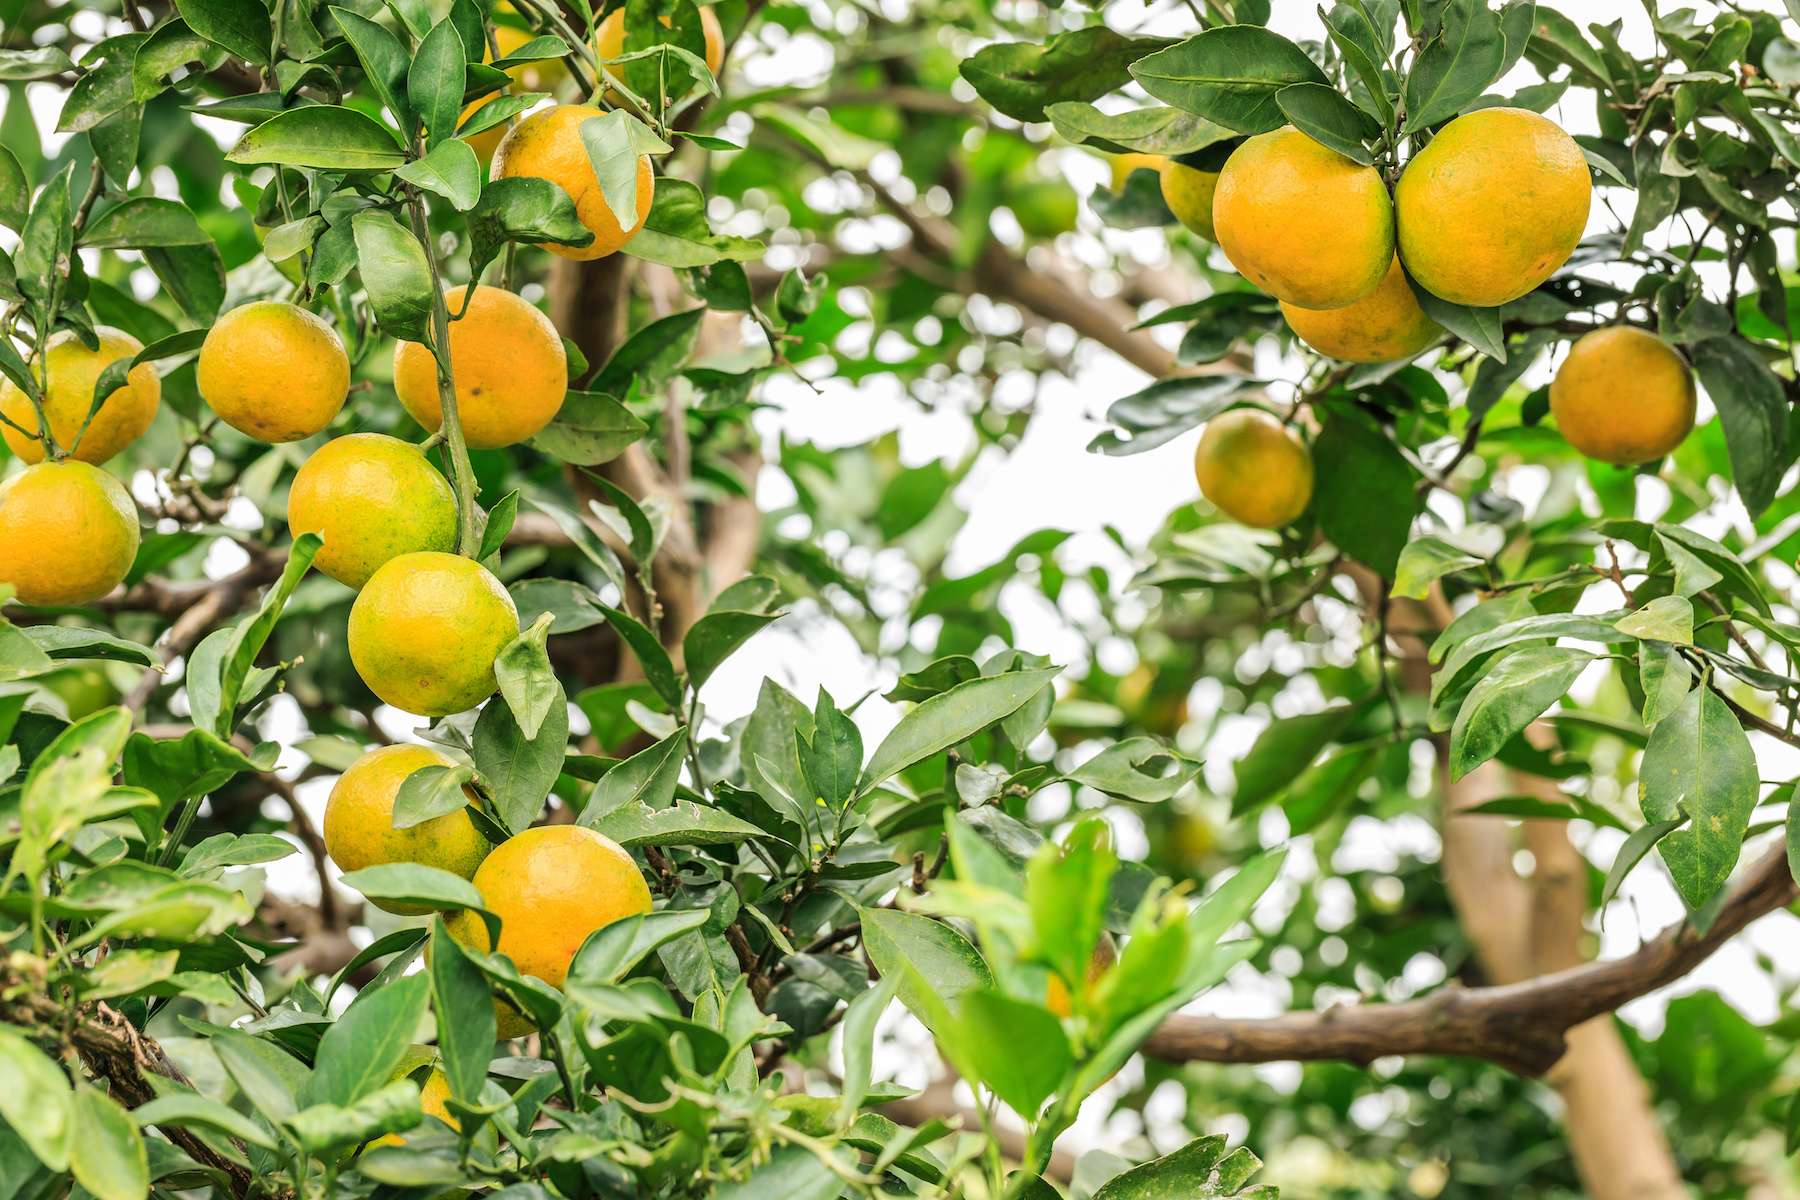 Richard Lyons Nursery no longer sells citrus trees.